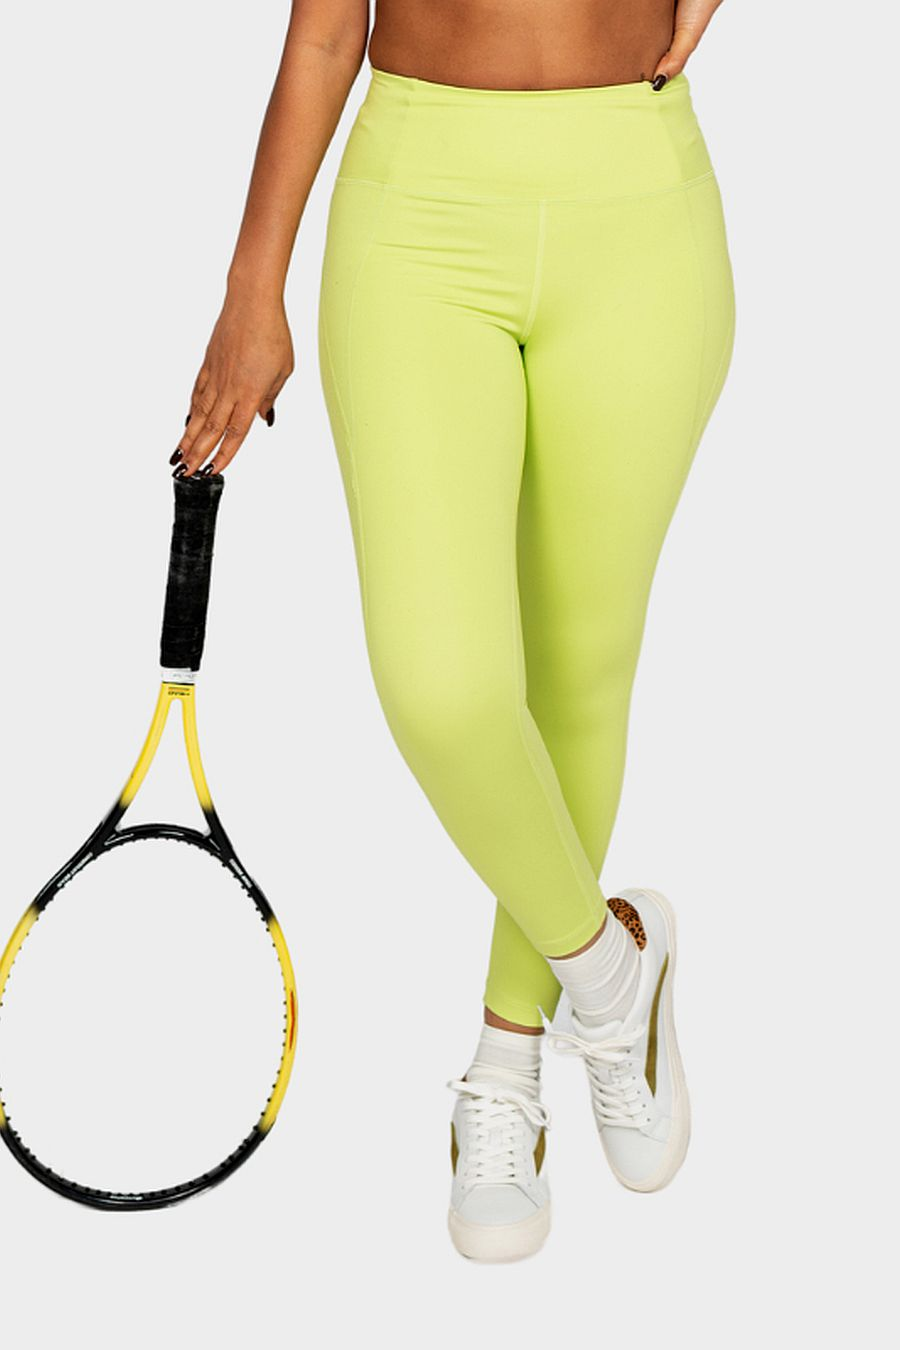 "Girlfriend Collective Lime Compressive Legging (28.5"")"